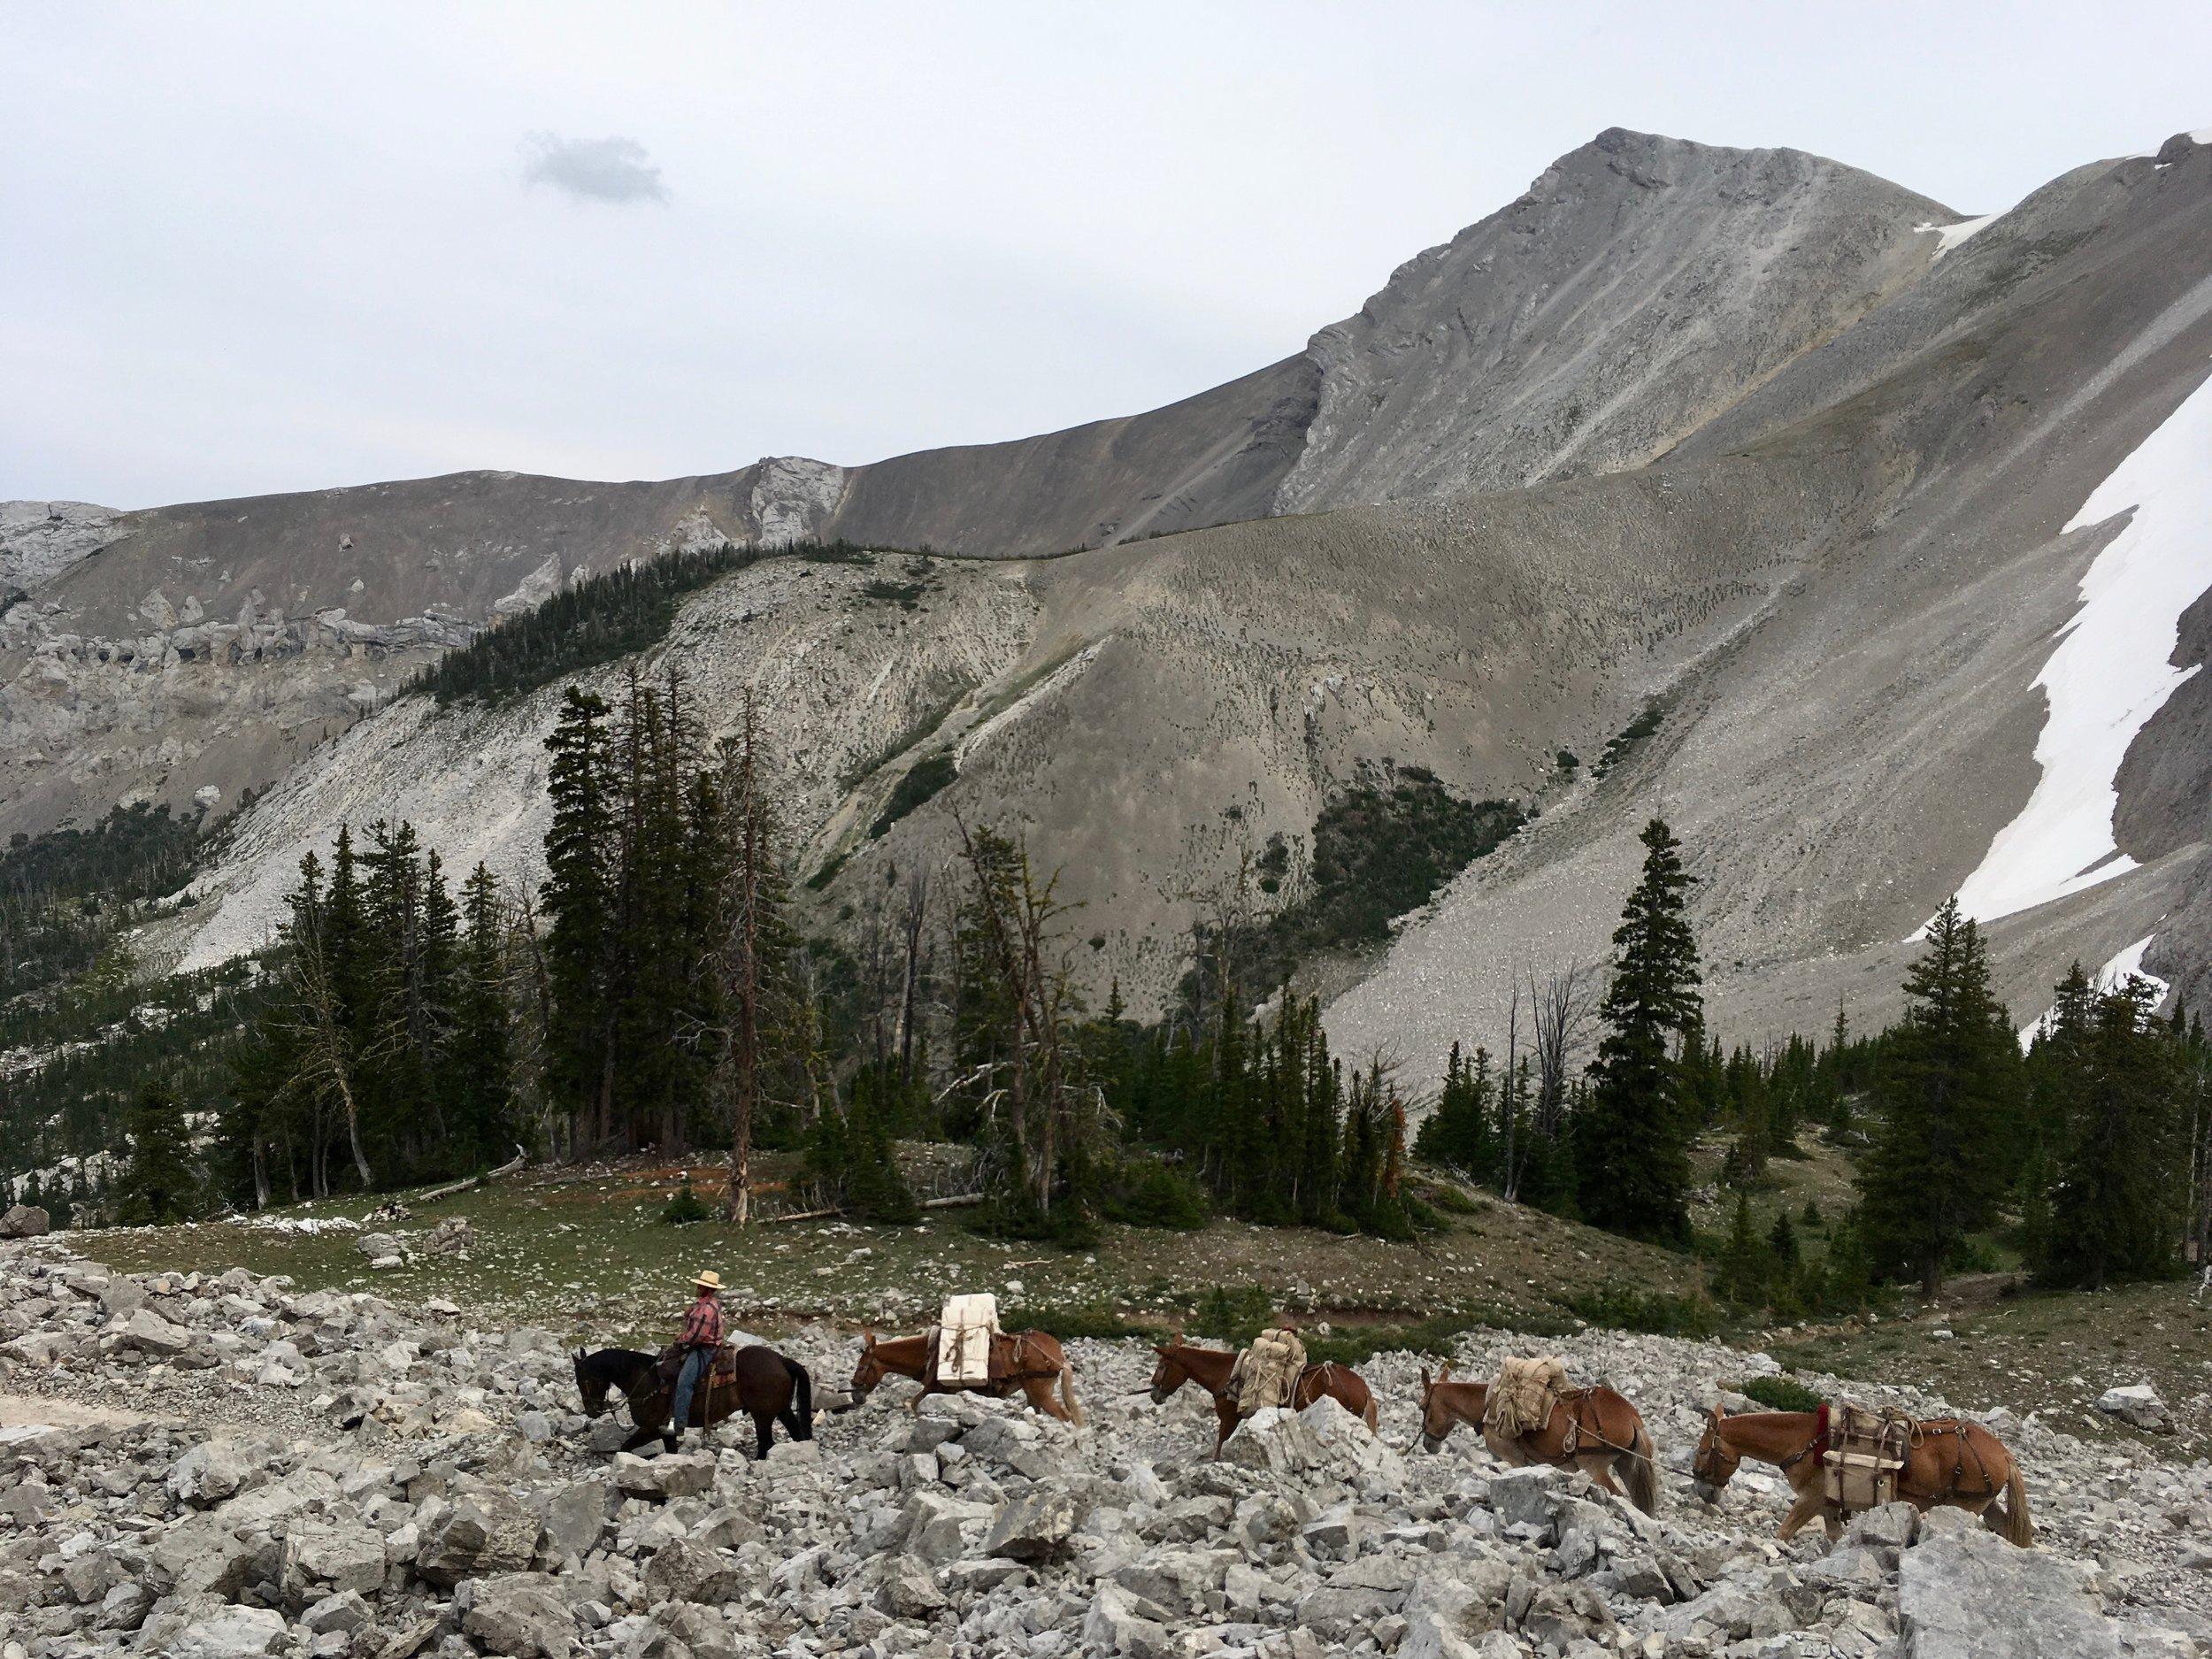 Mule string in the Bob Marshall Wilderness